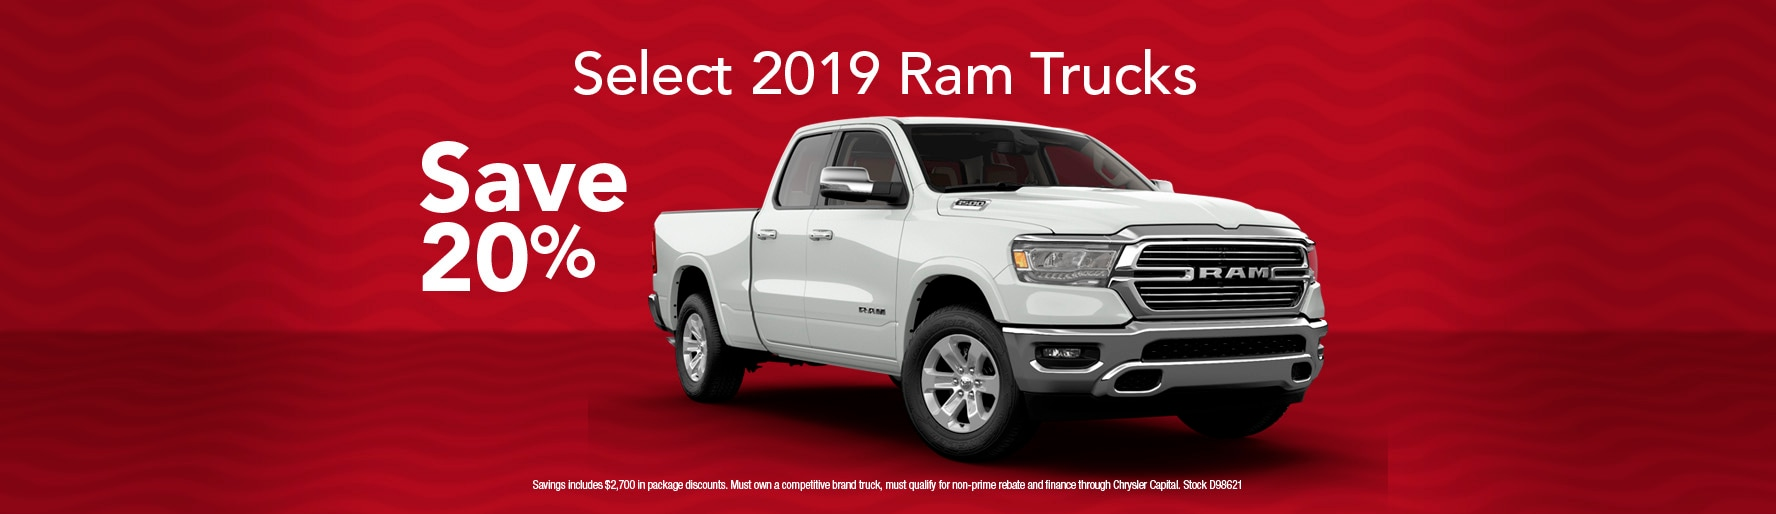 Dodge Dealership South Carolina >> New Ram Trucks | Anderson South Carolina | Work Truck ...